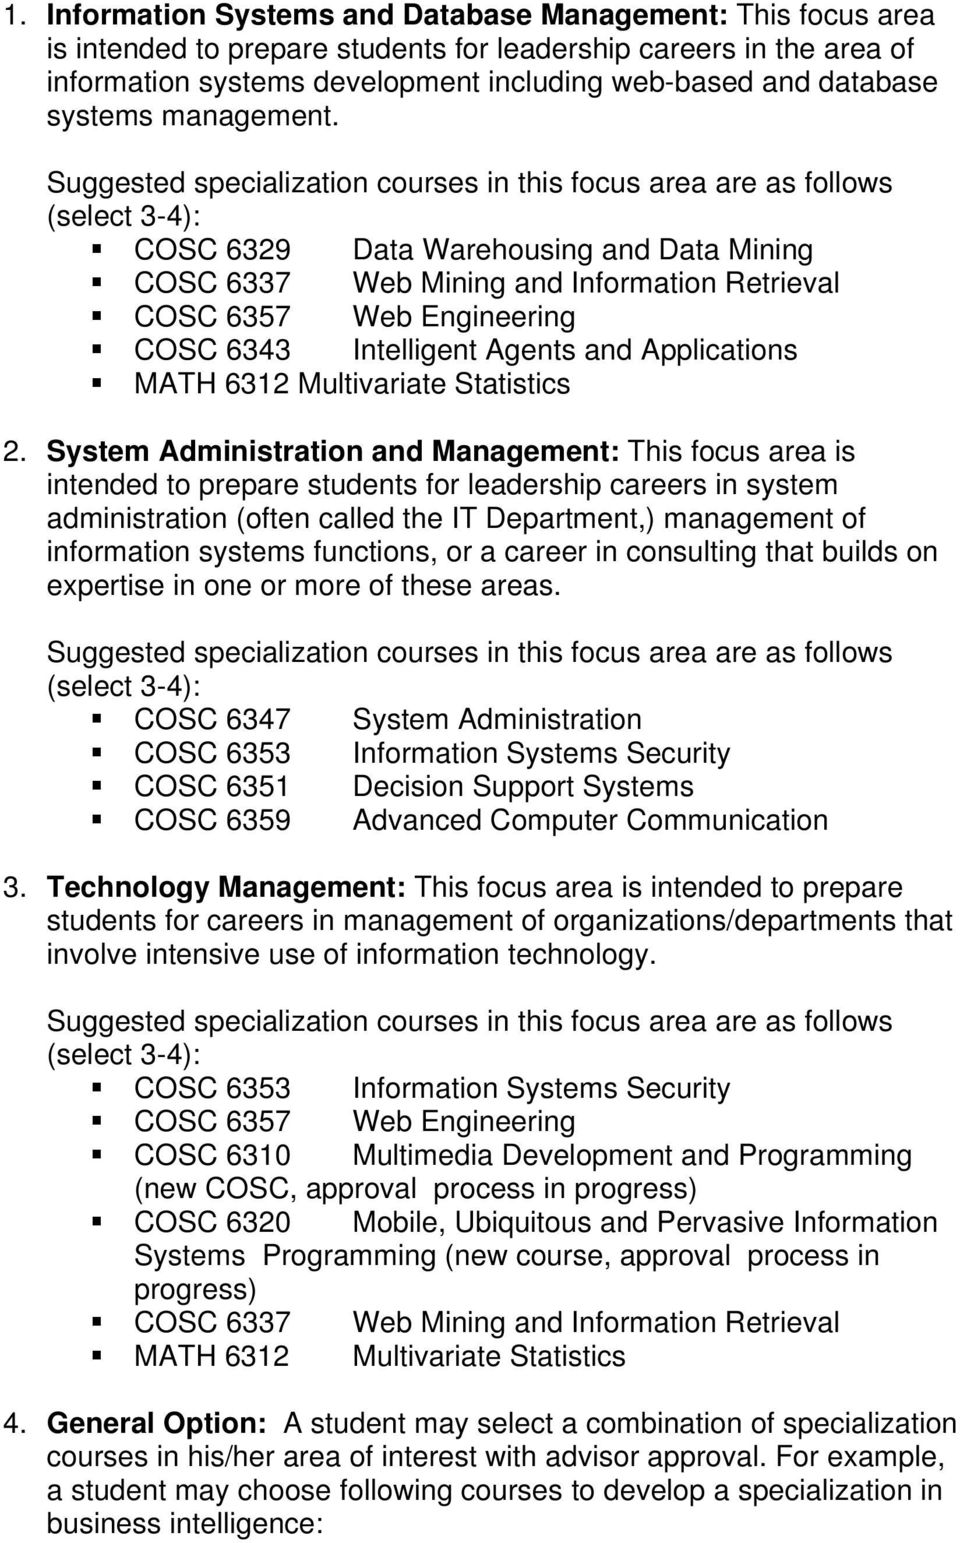 Suggested specialization courses in this focus area are as follows (select 3-4): COSC 6329 Data Warehousing and Data Mining COSC 6337 Web Mining and Information Retrieval COSC 6357 Web Engineering